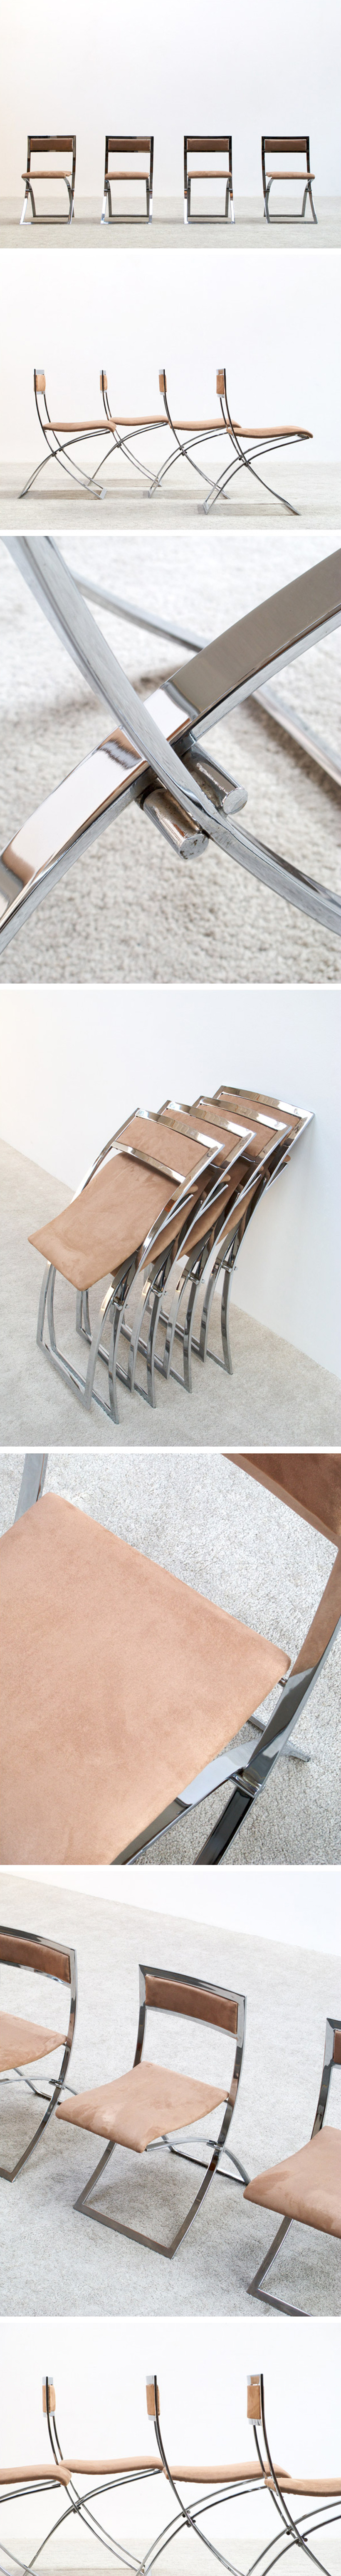 Marcello Cuneo 4 Luisa folding chairs Large